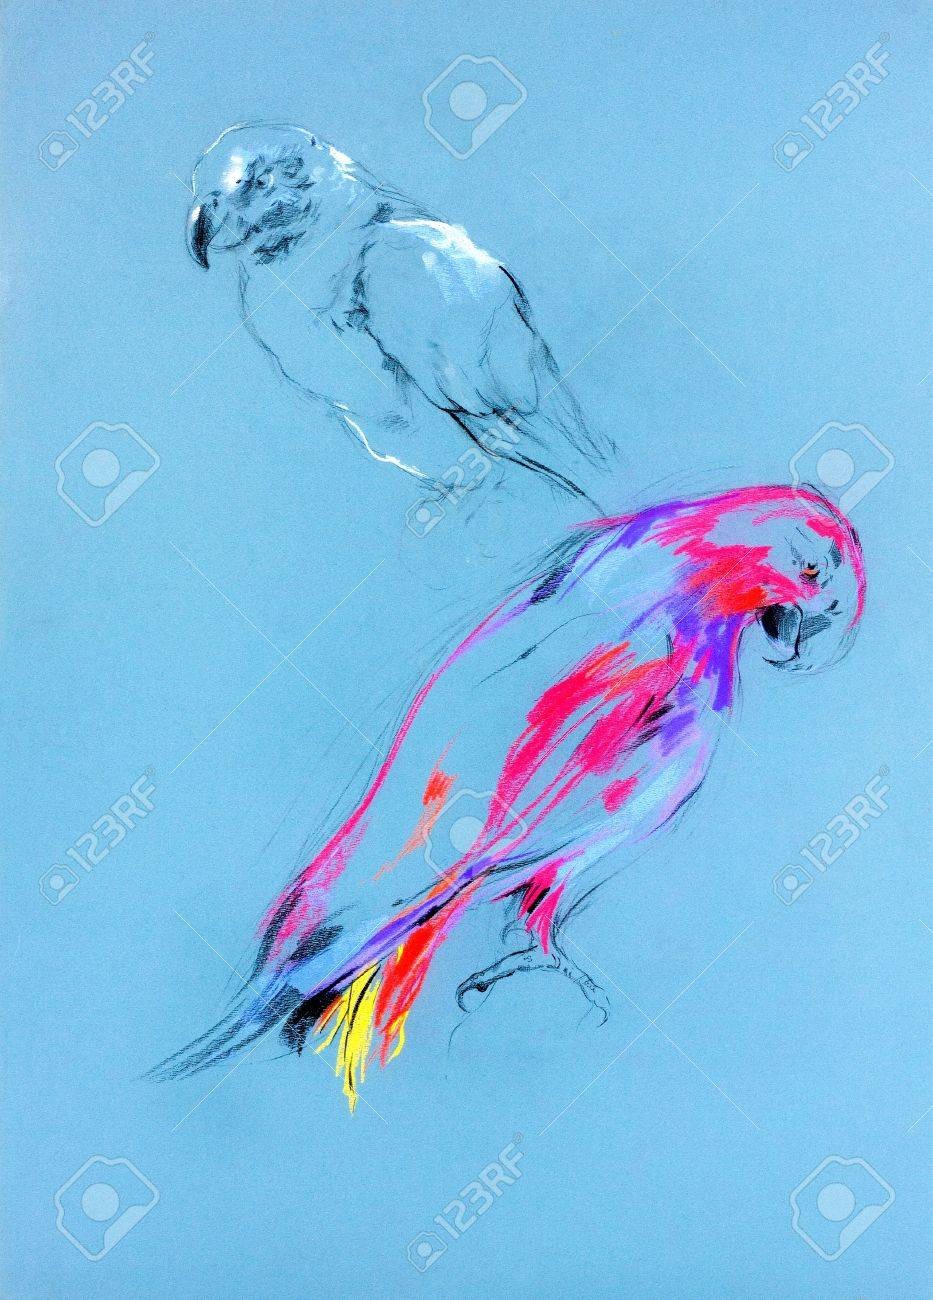 Original pastel and  hand drawn painting or  working  sketch of parrot Stock Photo - 15408469